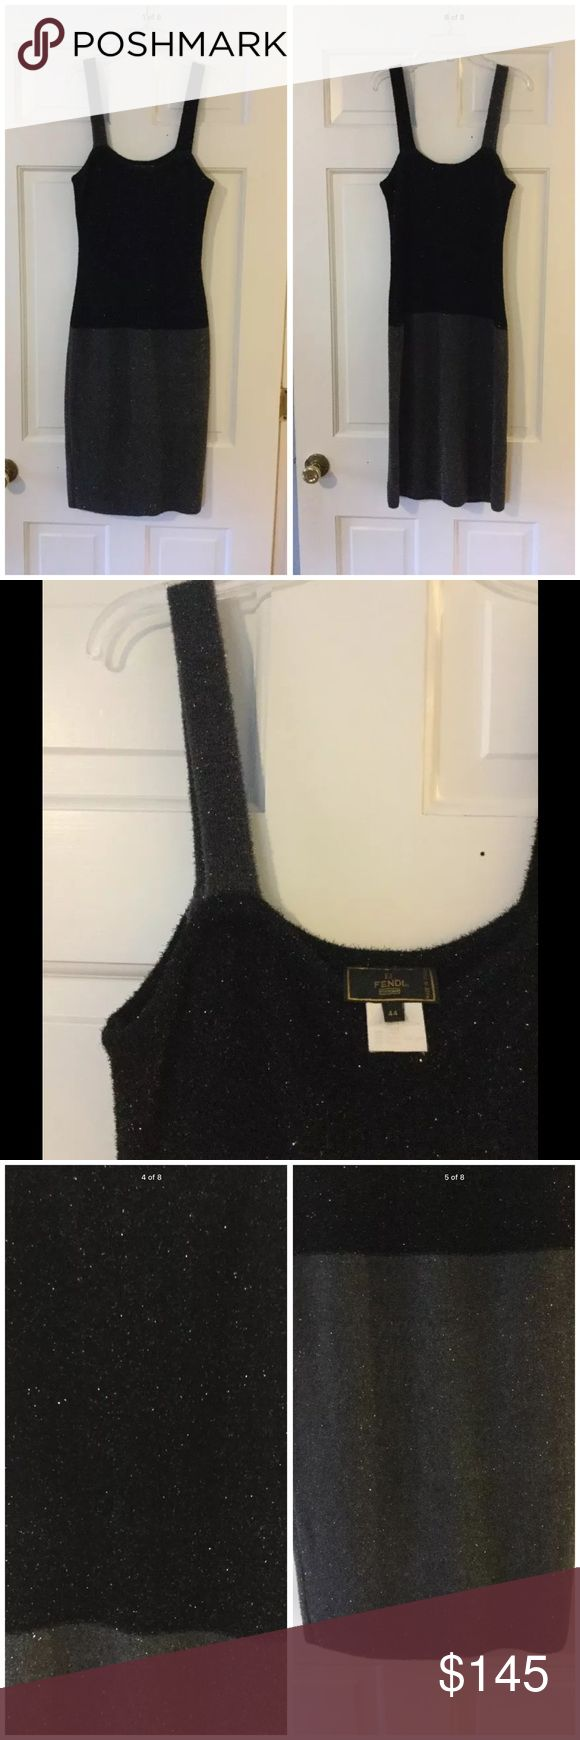 "Fendi eyelash sleeveless Colorblock dress Stunning sleeveless Fendi dress in a super soft eyelash texture. Nylon/rayon.  Size 44 is equivalent to a US size 8. Underarm across 16"". Length 43"". Excellent condition. EUC. Fendi Dresses"